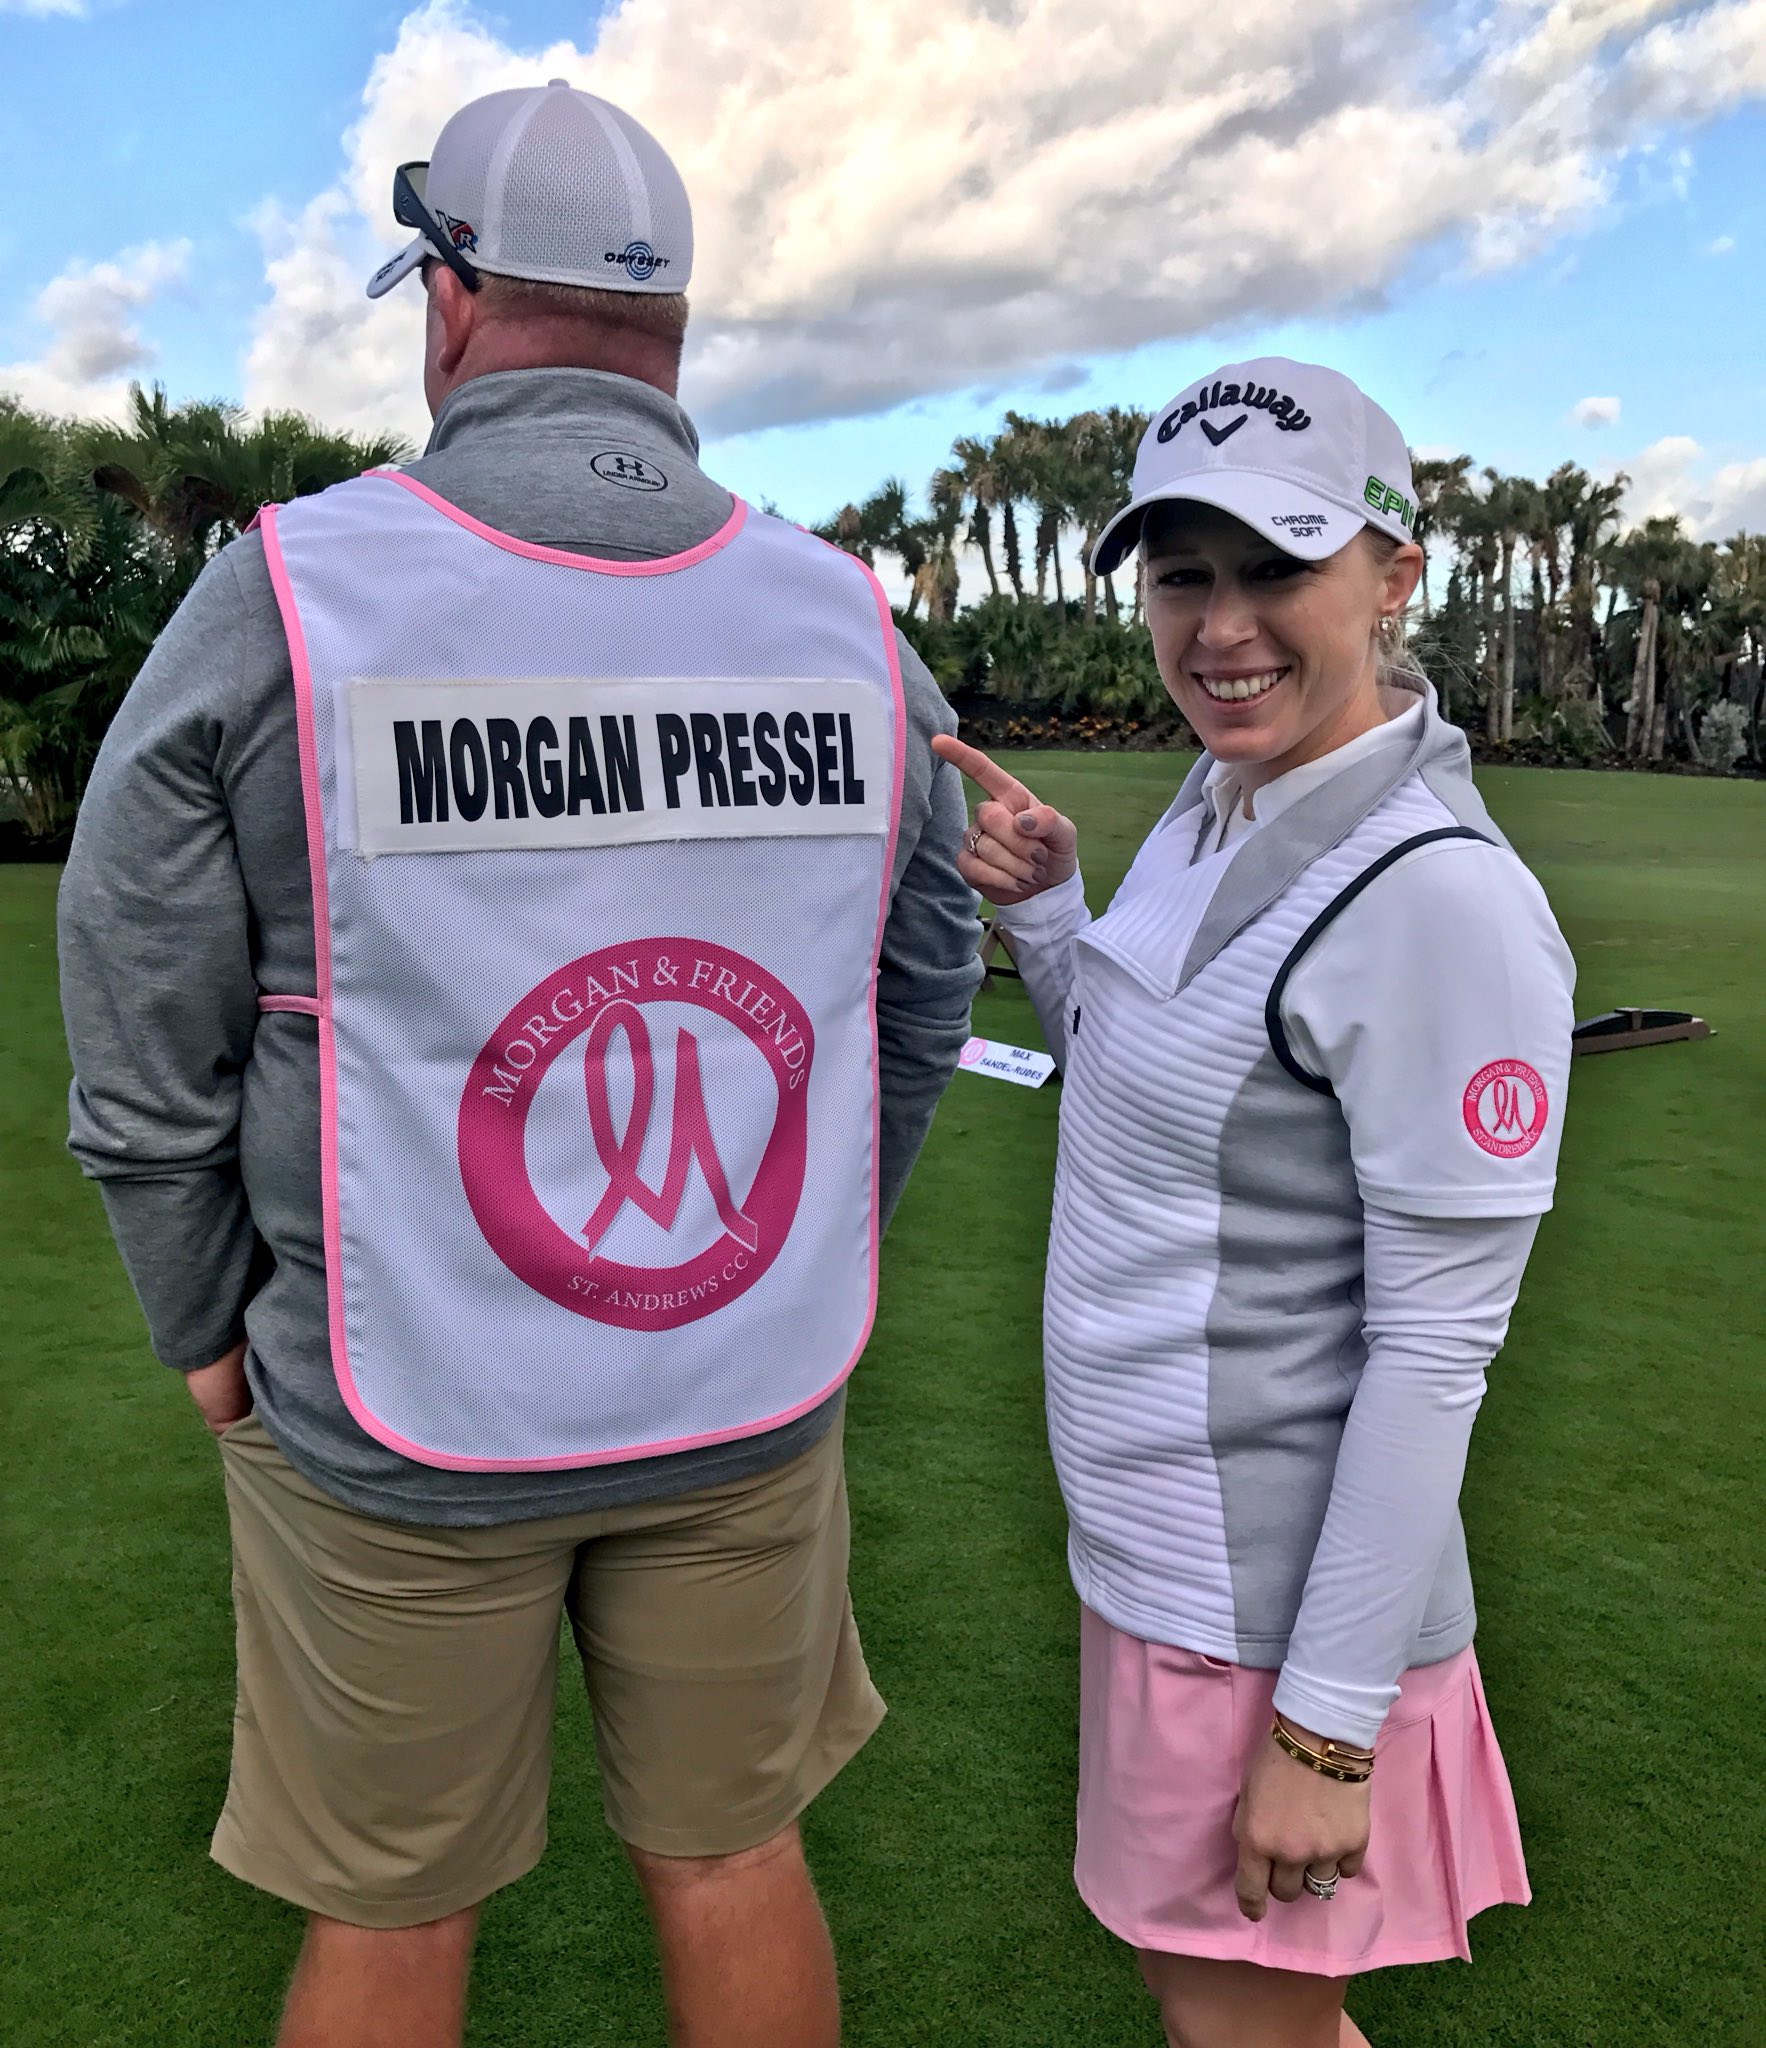 Who's ready for an awesome day of golf?! #MorganandFriends17 @mpressel https://t.co/XjWENUfmGO